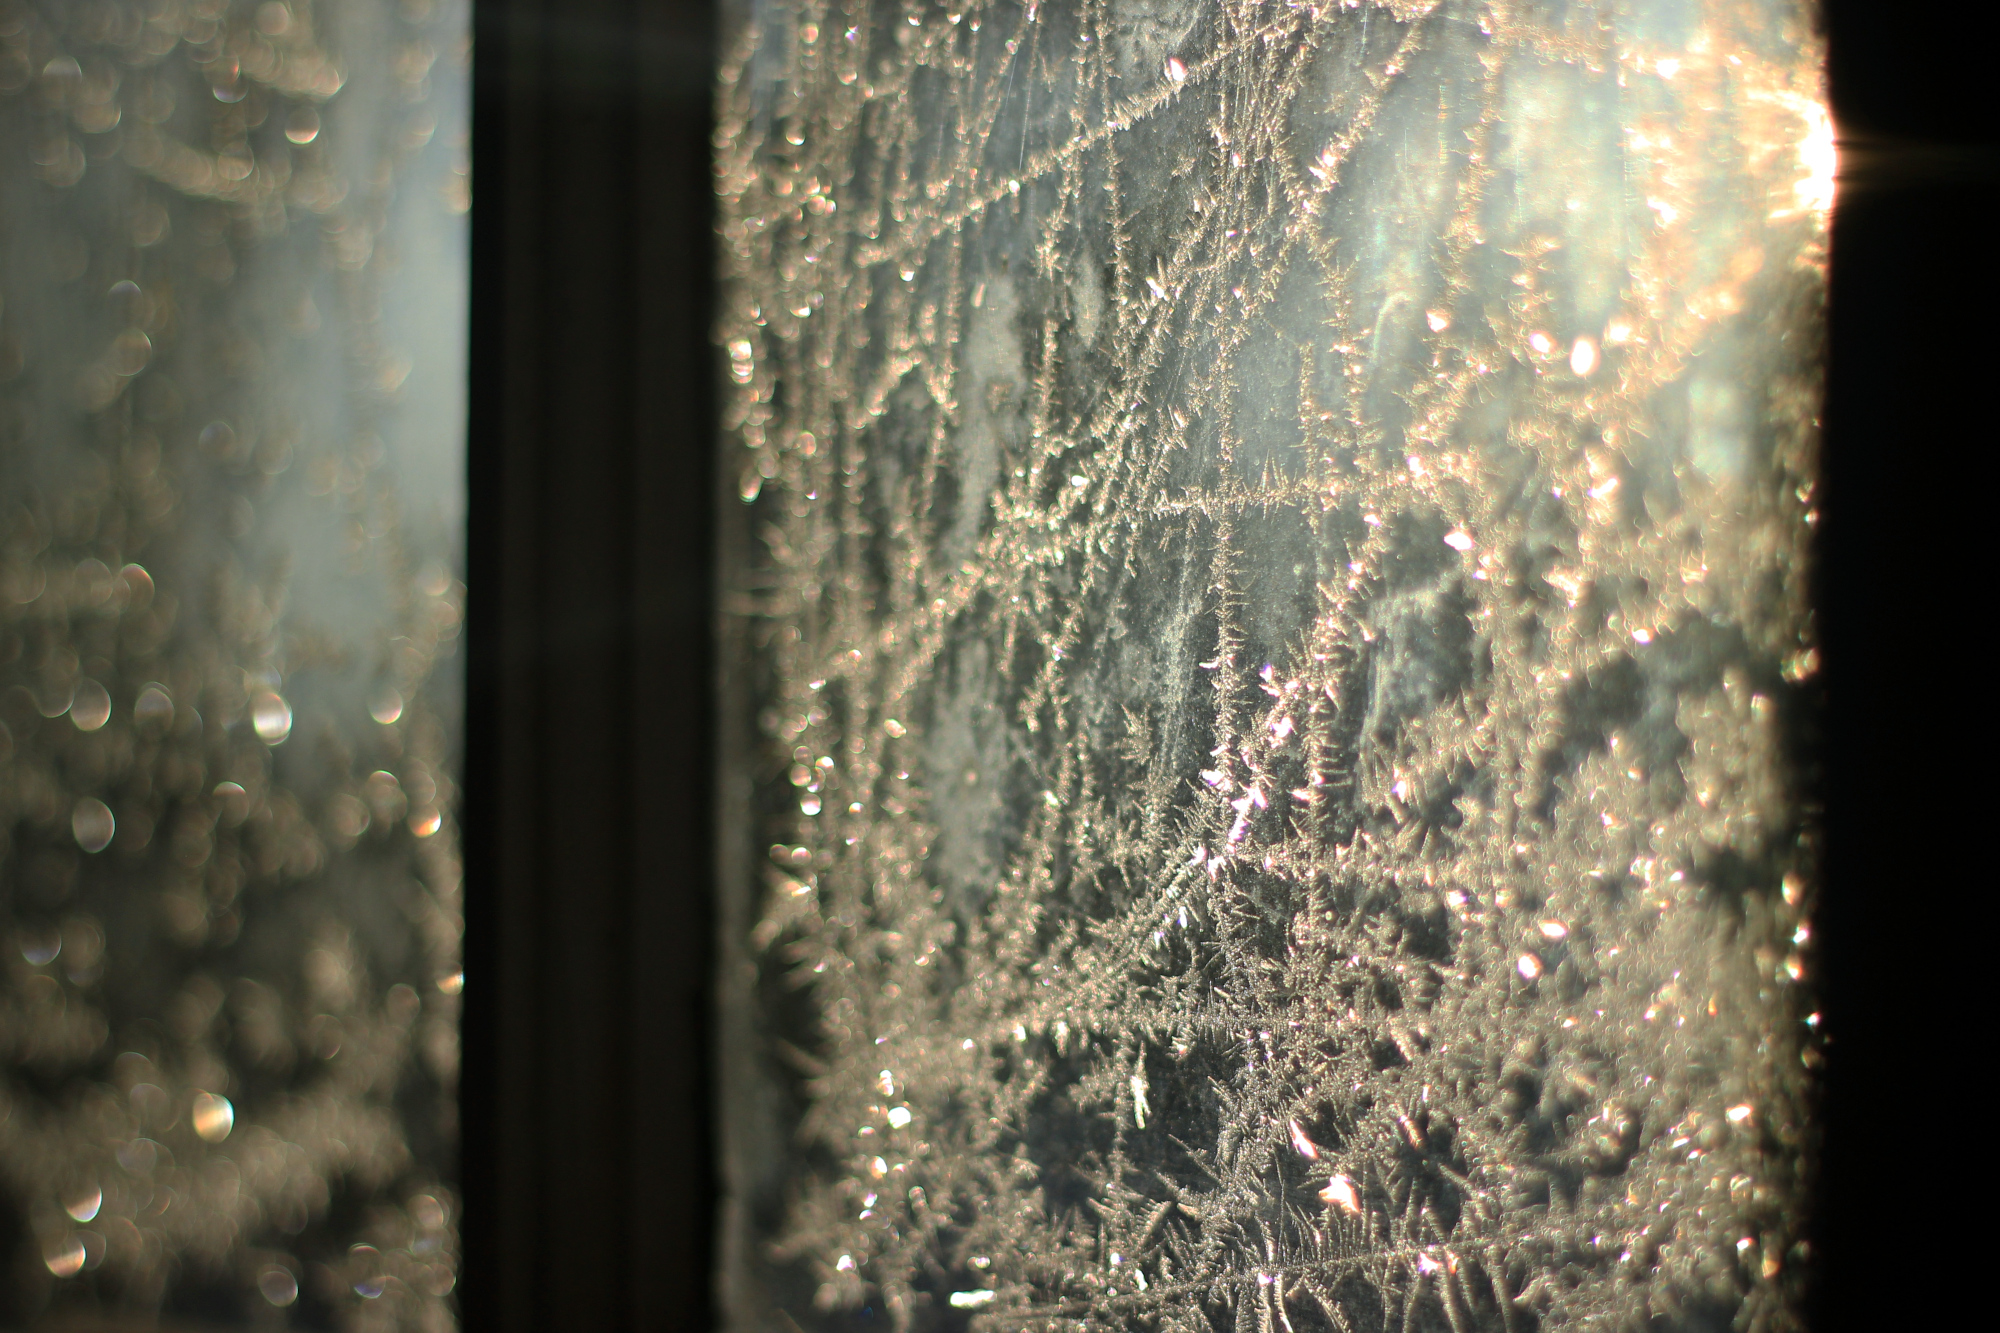 Frost on the windows